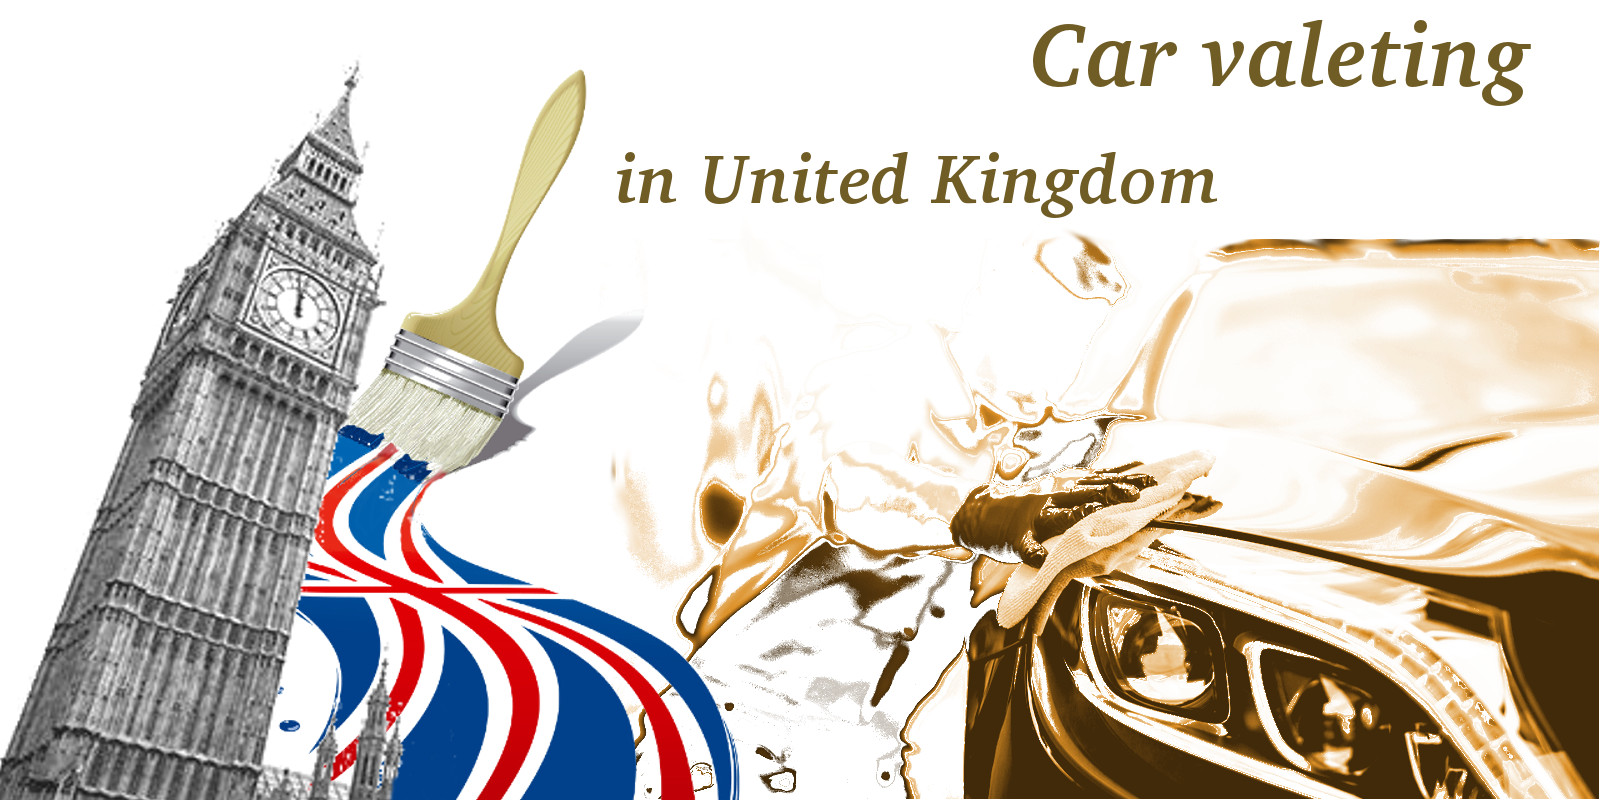 Car valeting services UK